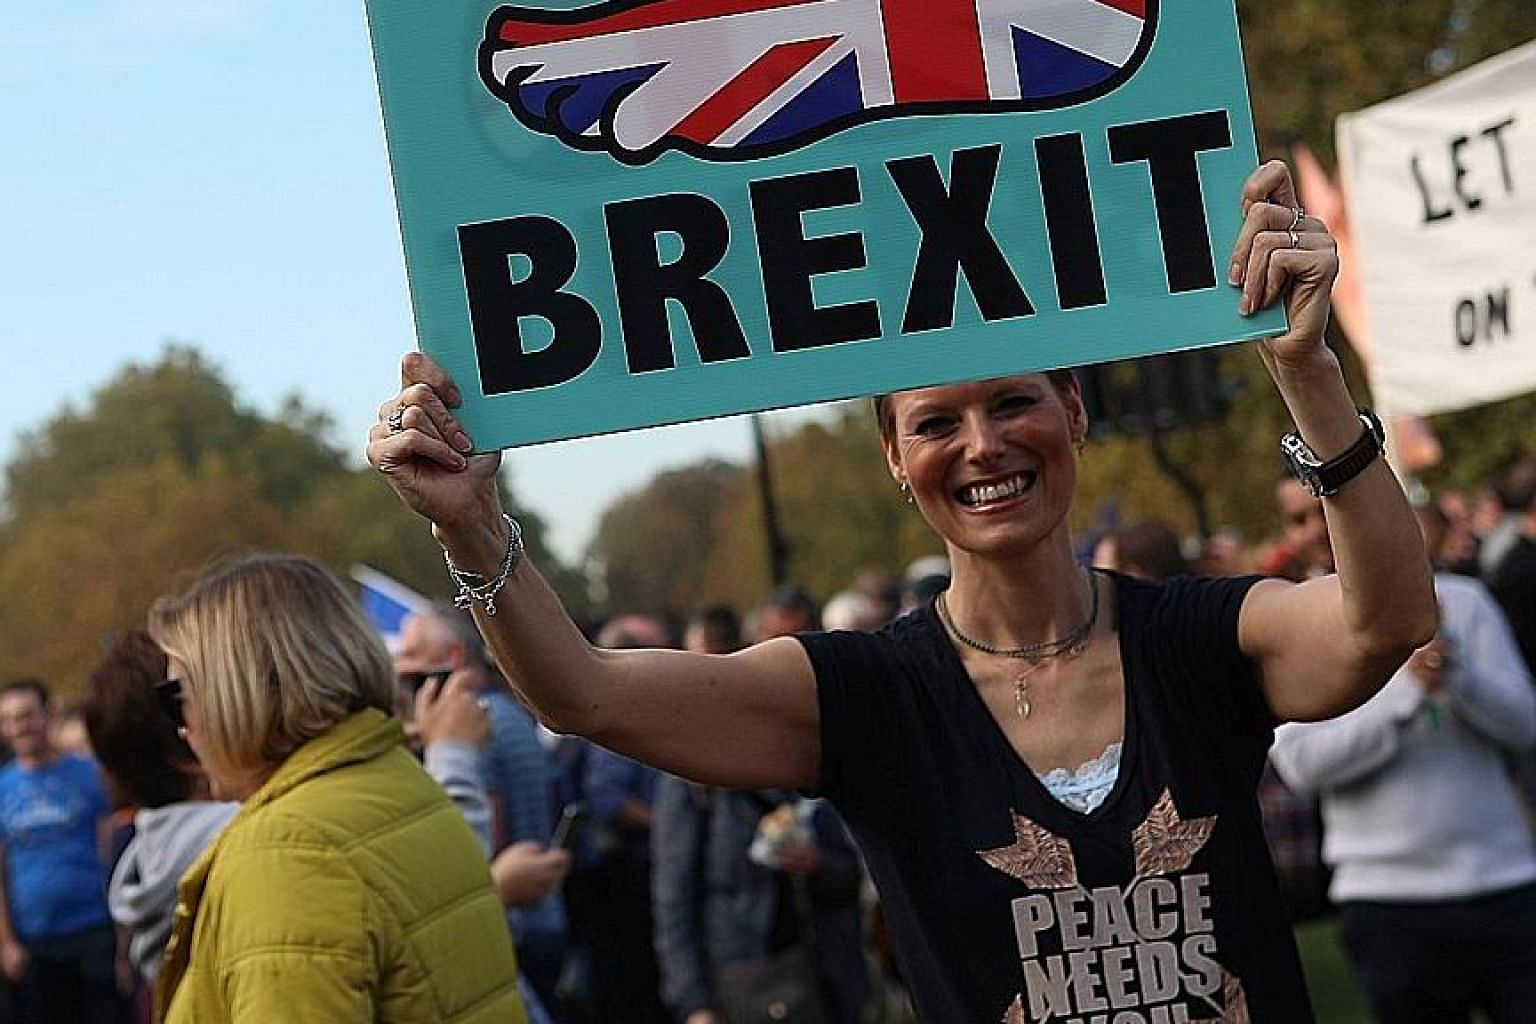 Anti-Brexit protesters marching through central London last Saturday. An audit found that uncertainty over the course of Brexit talks has delayed preparations for a no-deal scenario for businesses and the government.